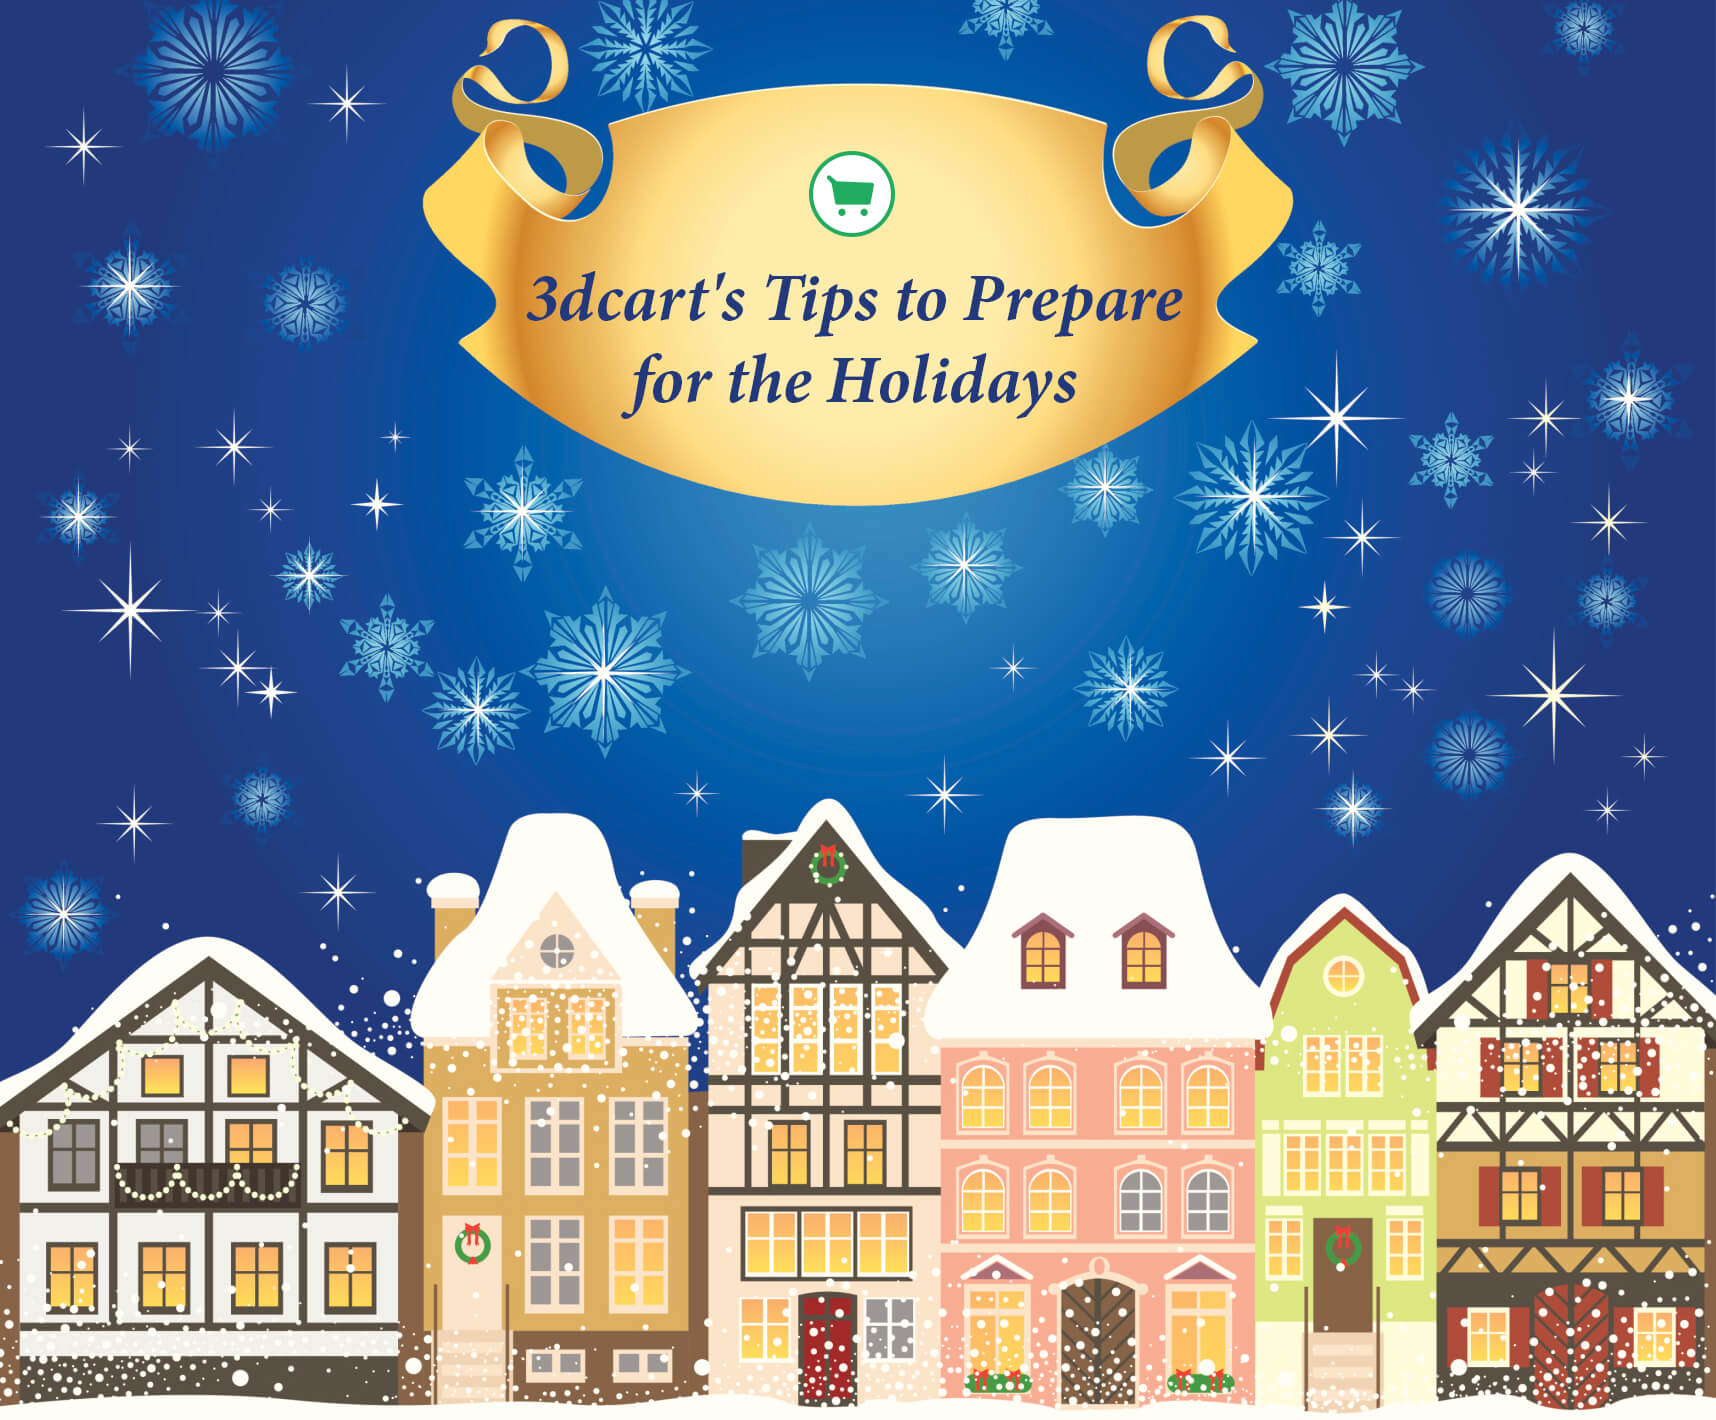 3dcart's Tips to Prepare for the Holidays